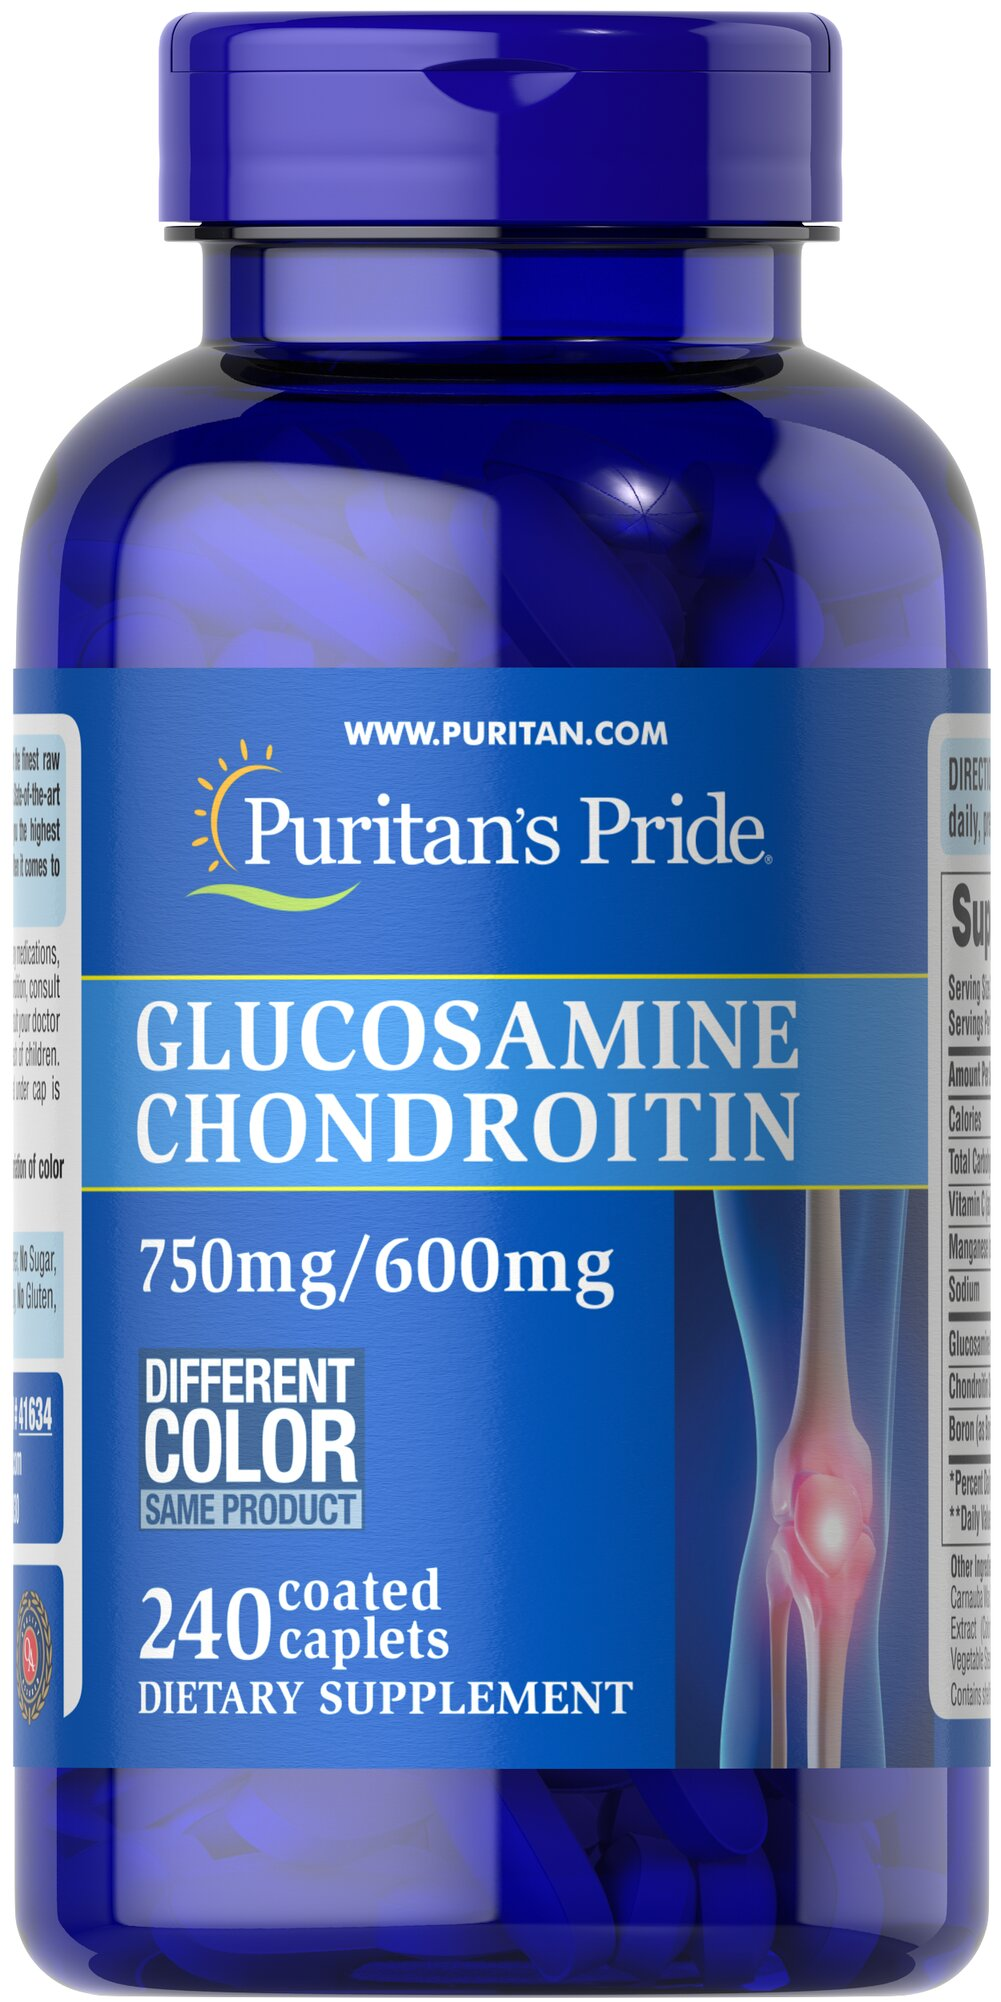 Triple Strength Glucosamine Chondroitin 750 mg/600 mg <p>Glucosamine is a key structural component in cartilage and acts as a lubricant**</p><p>Chondroitin acts as a lubricant and is an important molecular component of glycosaminoglycans**</p><p>One serving of Triple Strength Glucosamine Chondroitin helps promote comfortable joint movement and two caplets provide 1500 mg Glucosamine and 1200 mg Chondroitin.</p> 240 Caplets 750 mg/600 mg $94.99